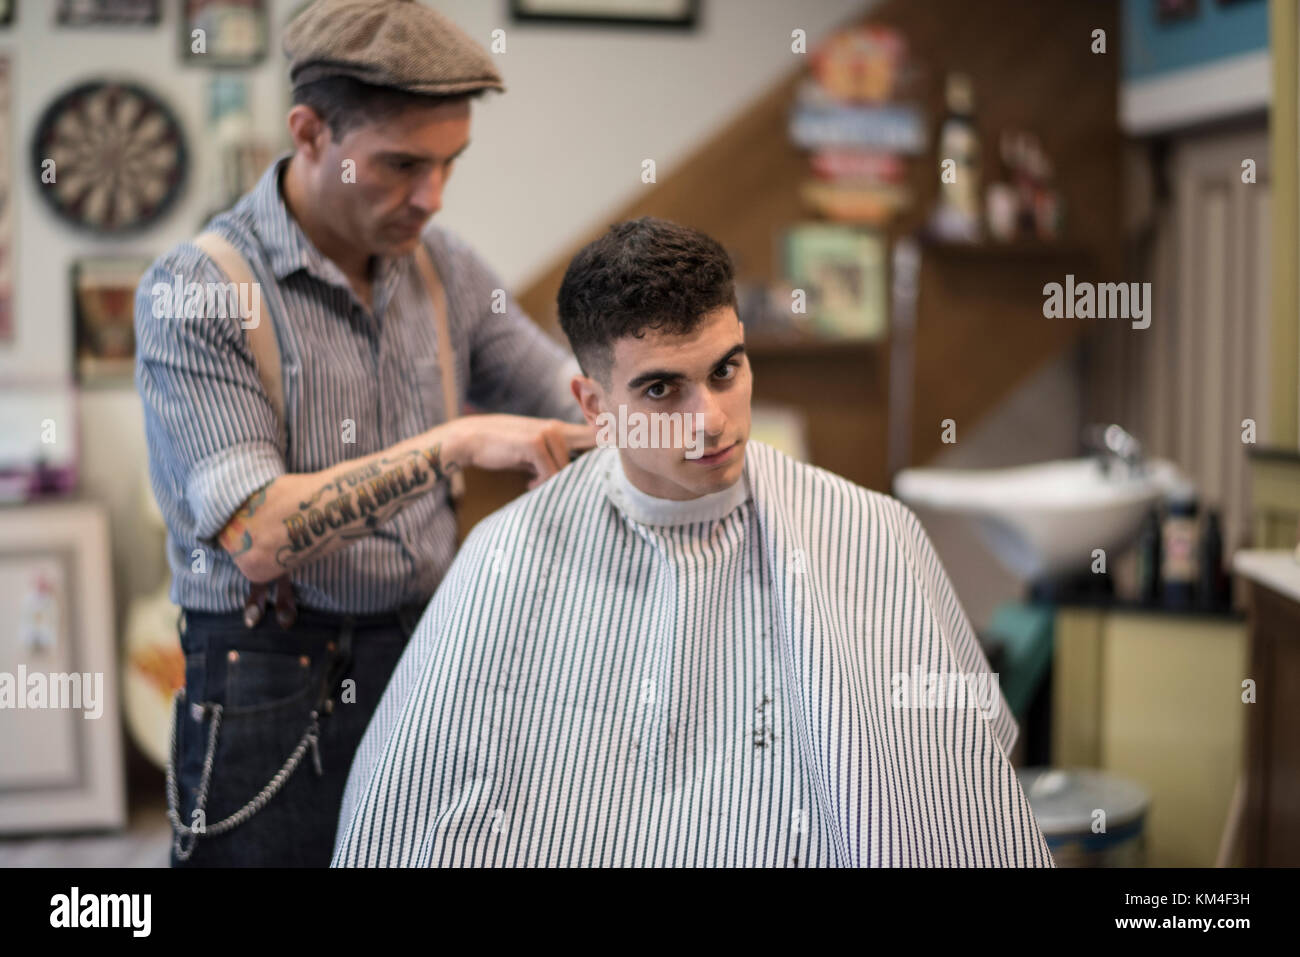 Barber shop, man cuts person hair - Stock Image